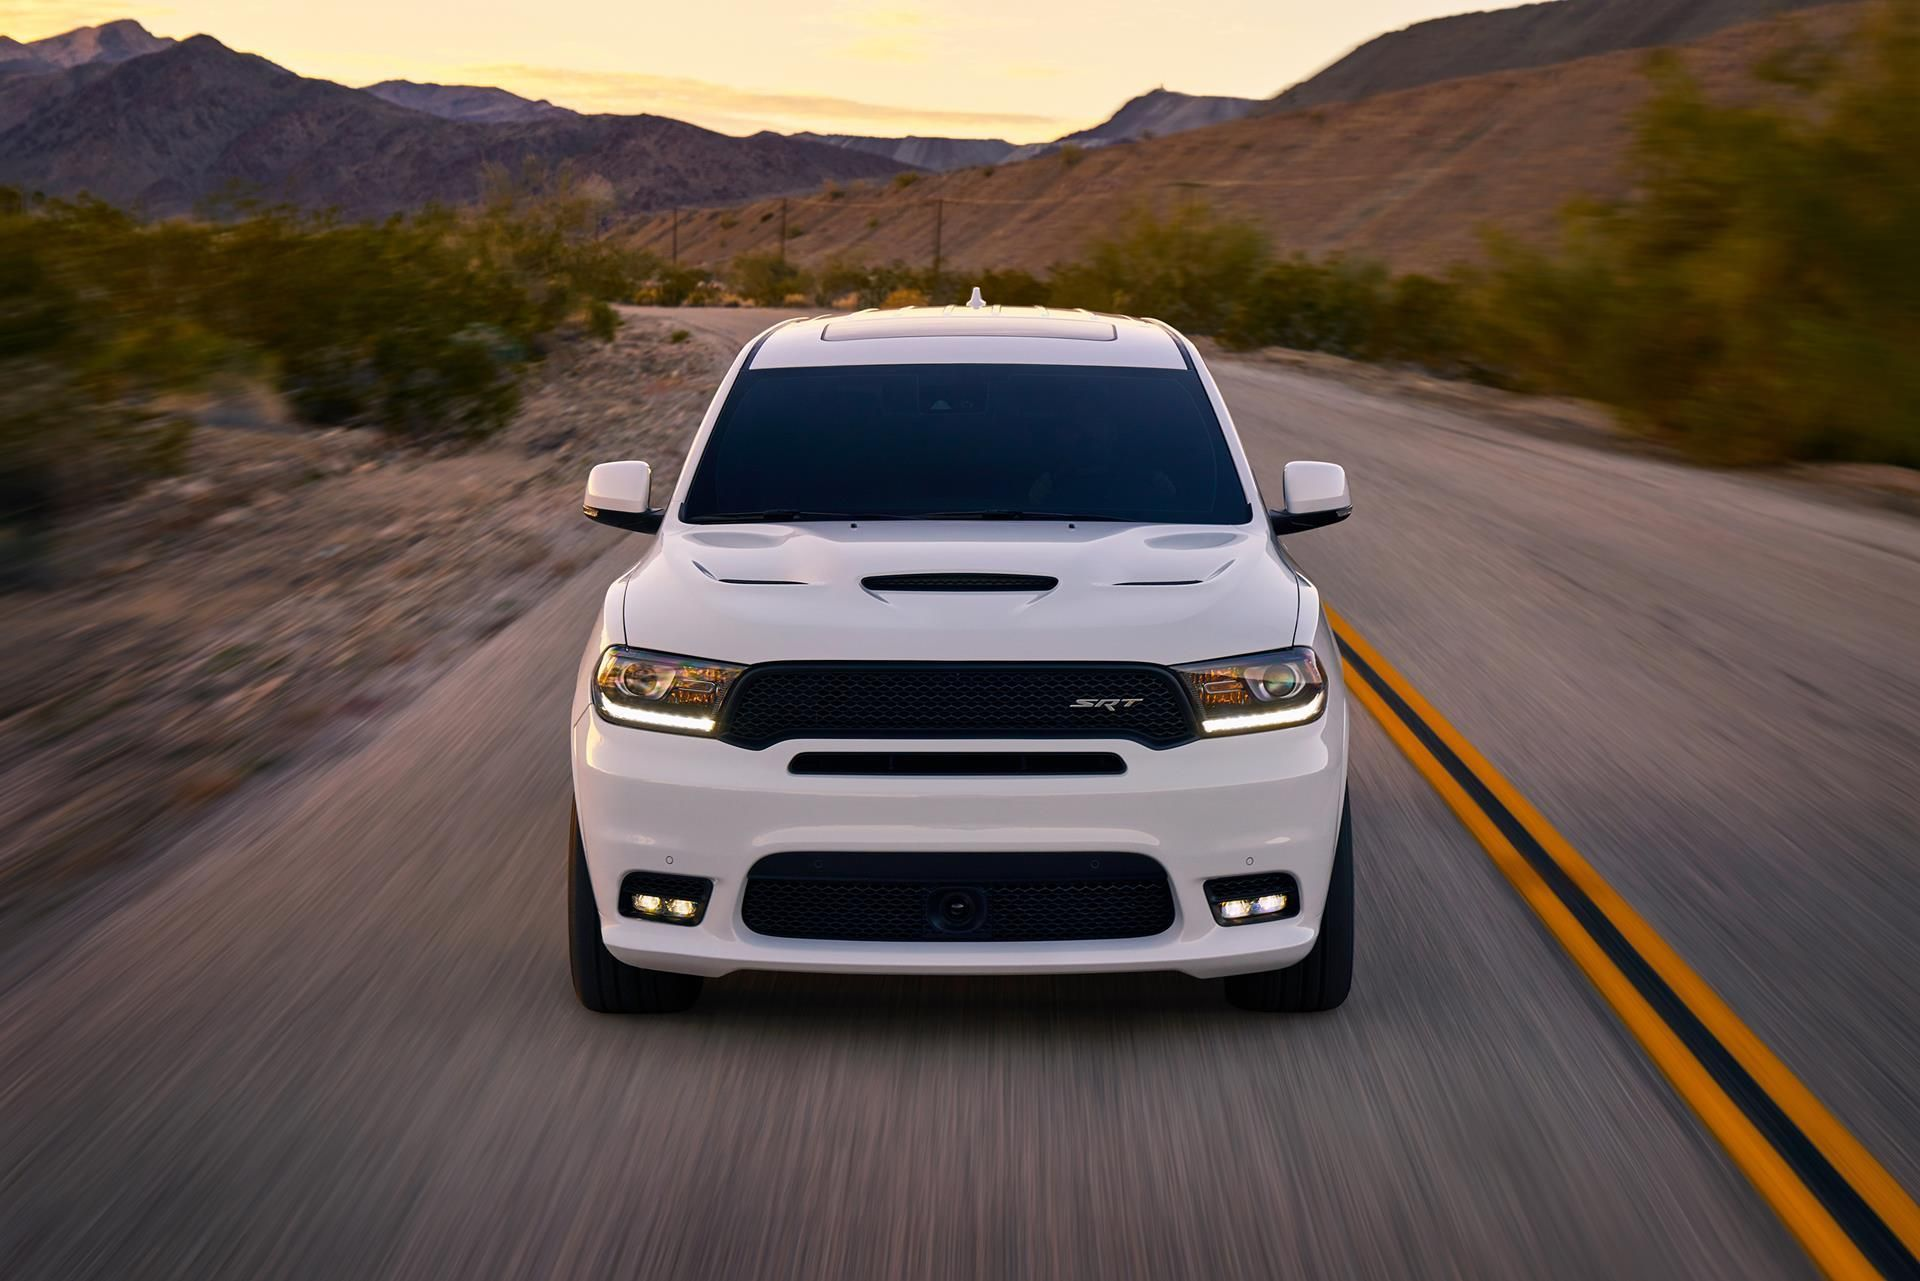 The dodge durango srt dodge charger of the full size suv segment will be first shown at 2017 chicago auto show on february 9 new 2018 dodge durango srt